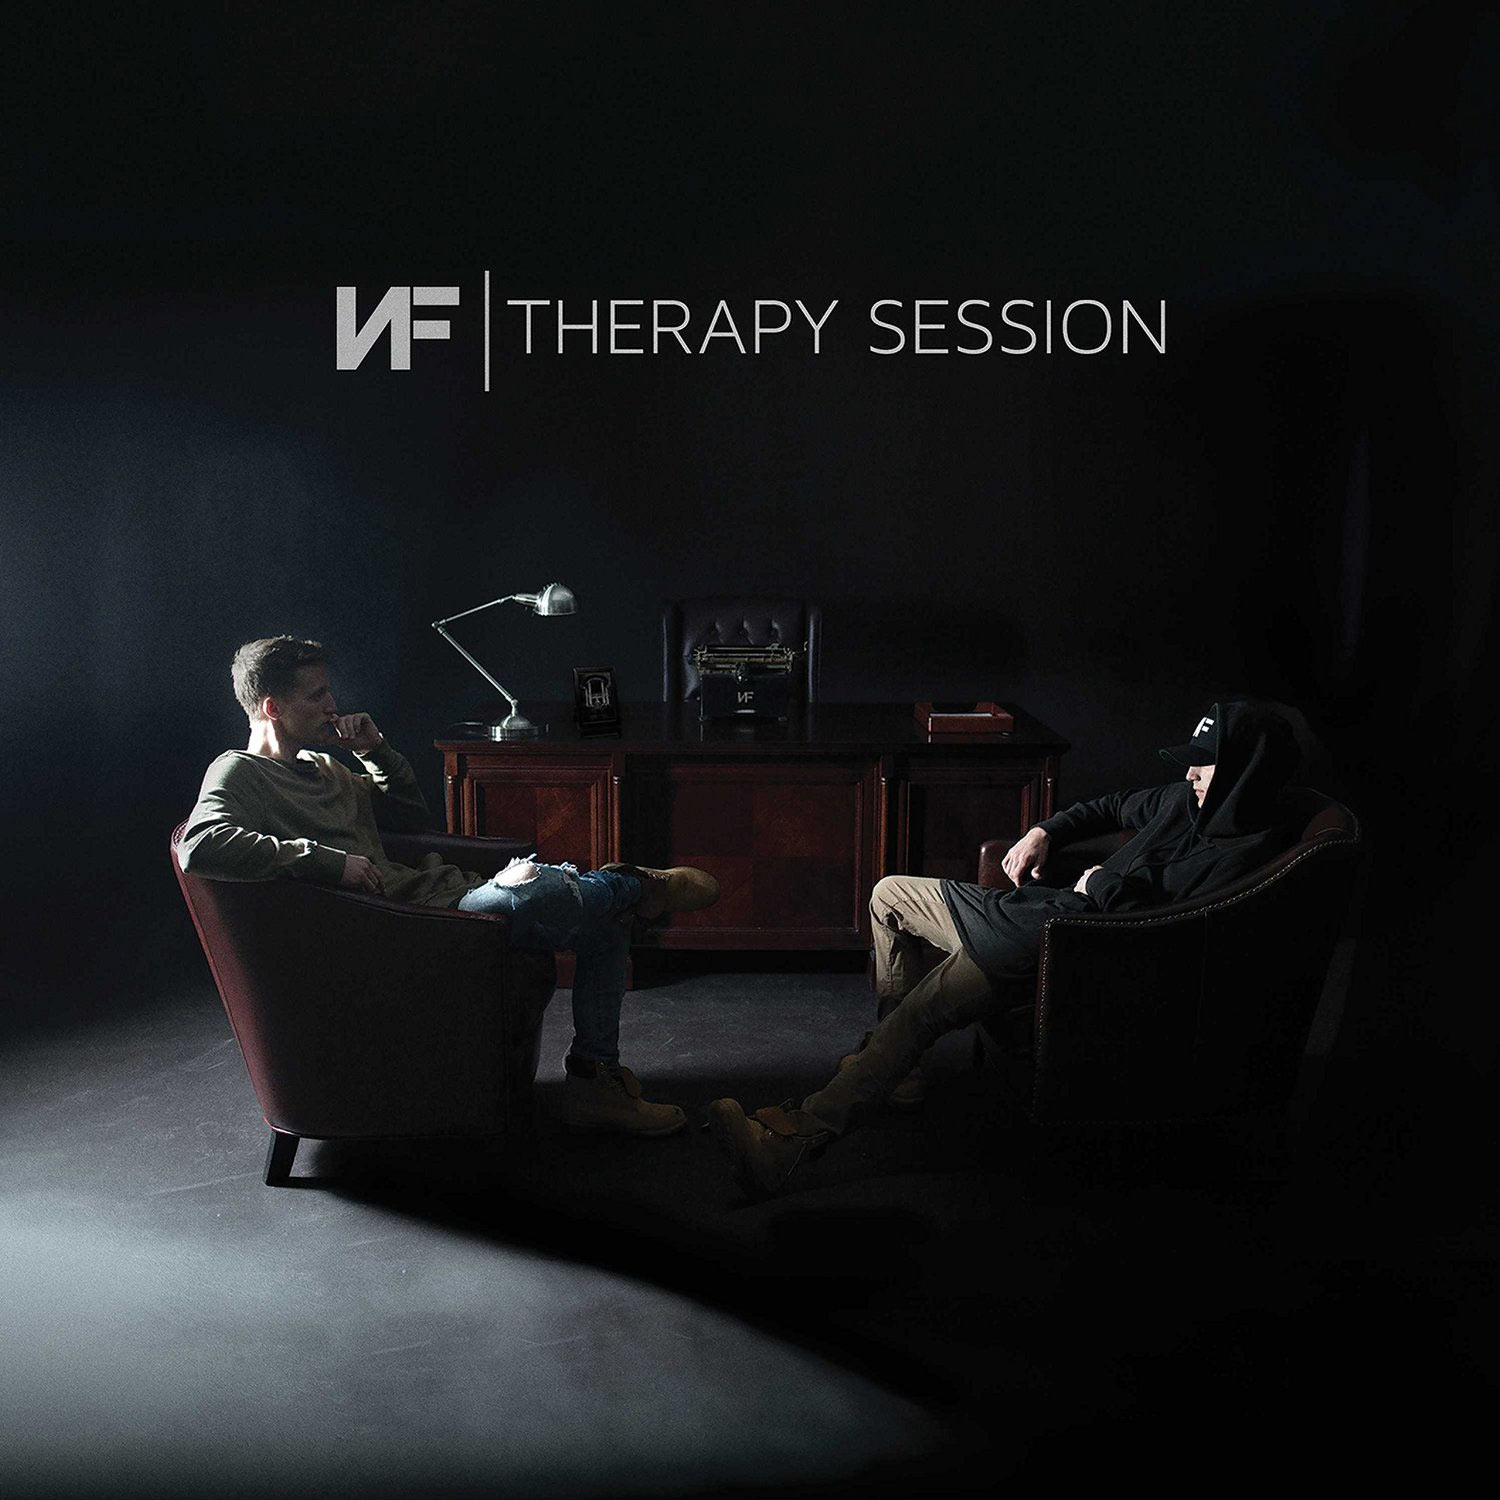 Therapy Session Tour October